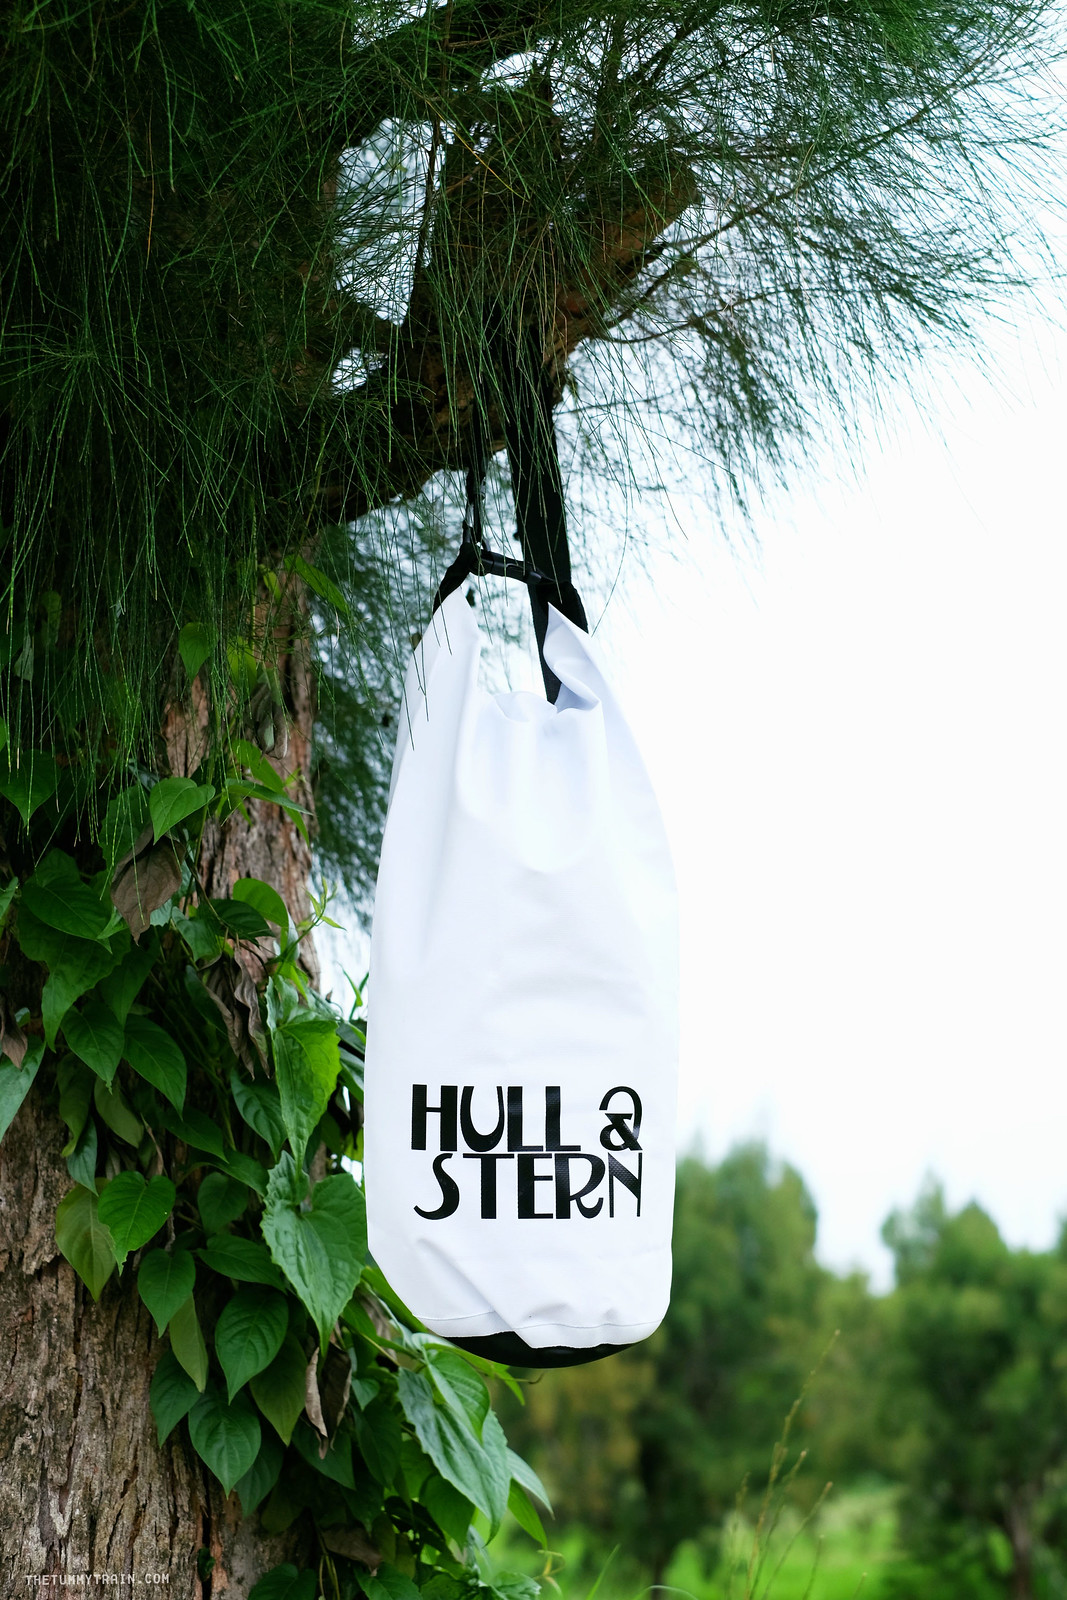 27932474532 a45695abf2 h - A heavy case of wanderlust + Hull & Stern Adventure bag giveaway!